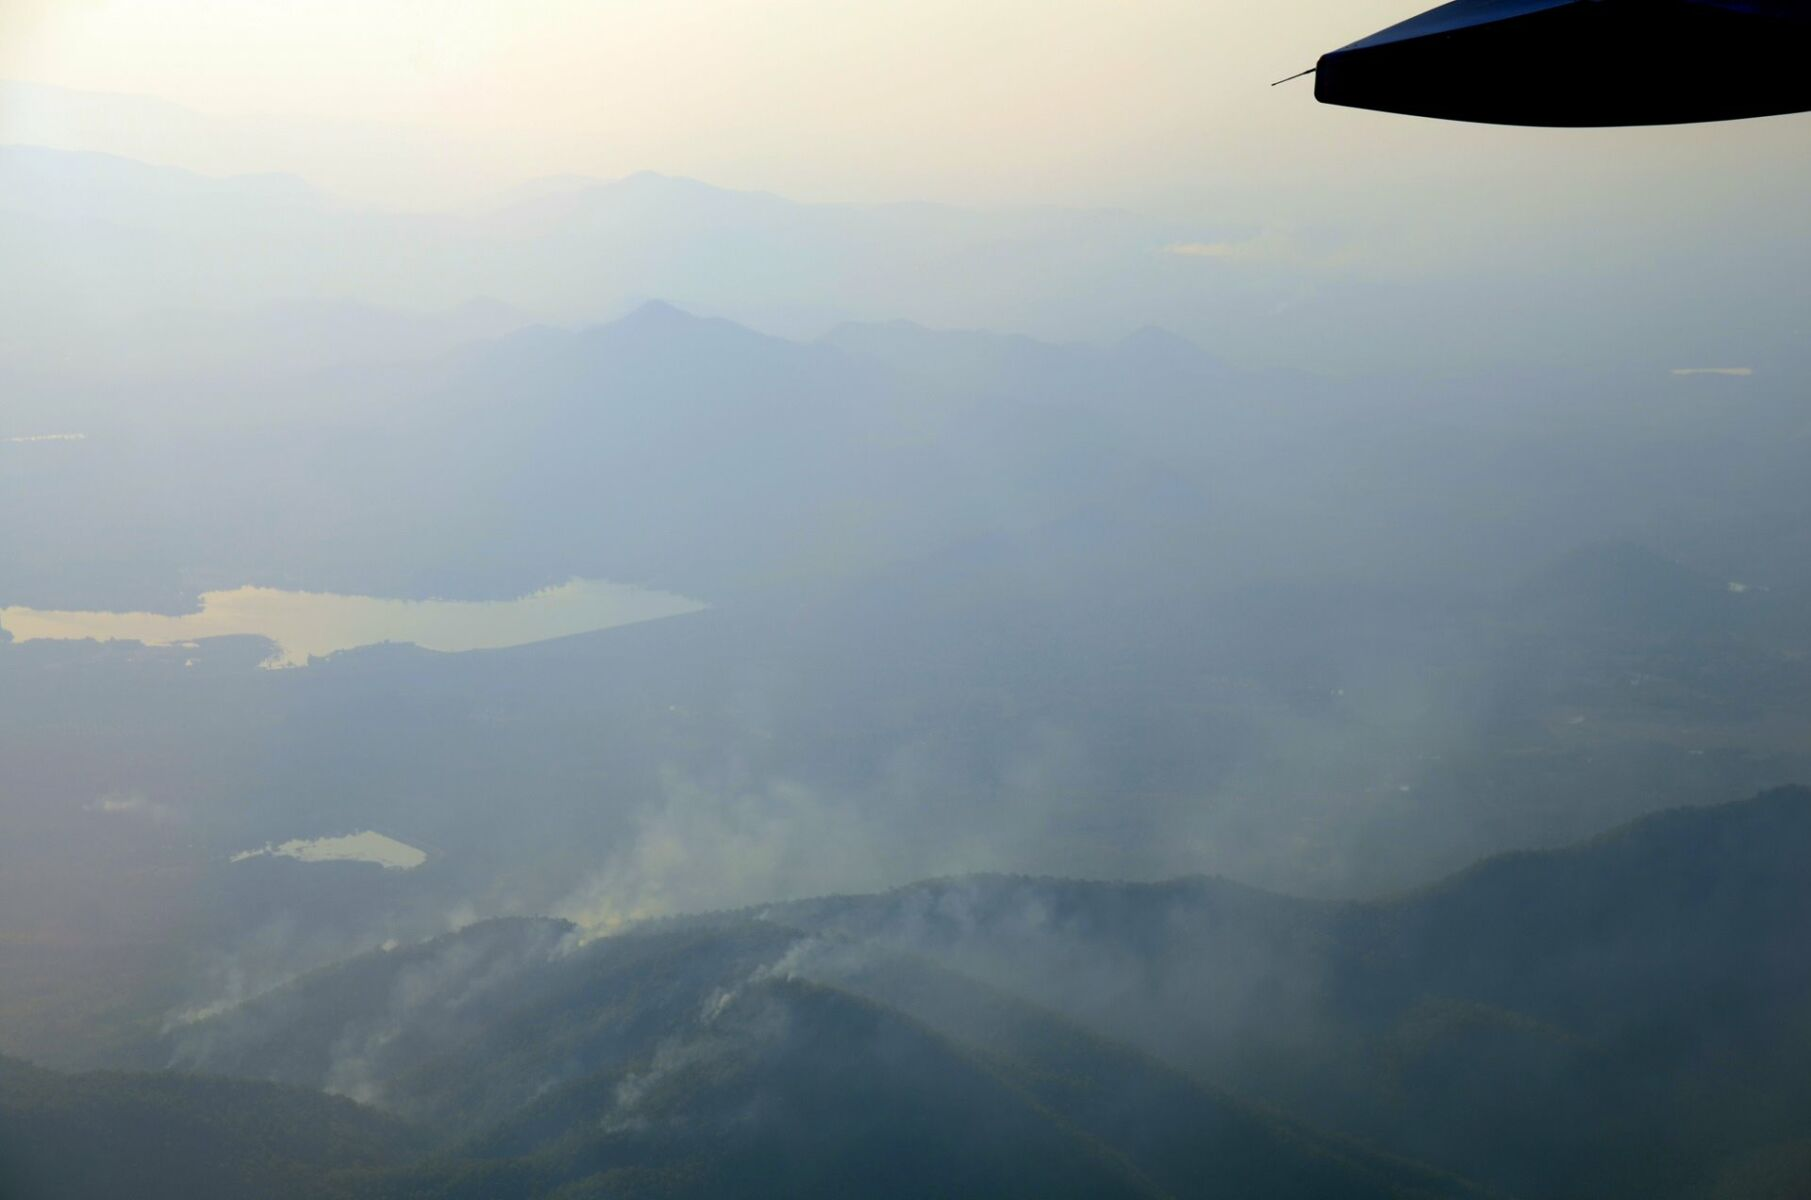 Northern Thailand sees dangerous levels of pollution | Thaiger